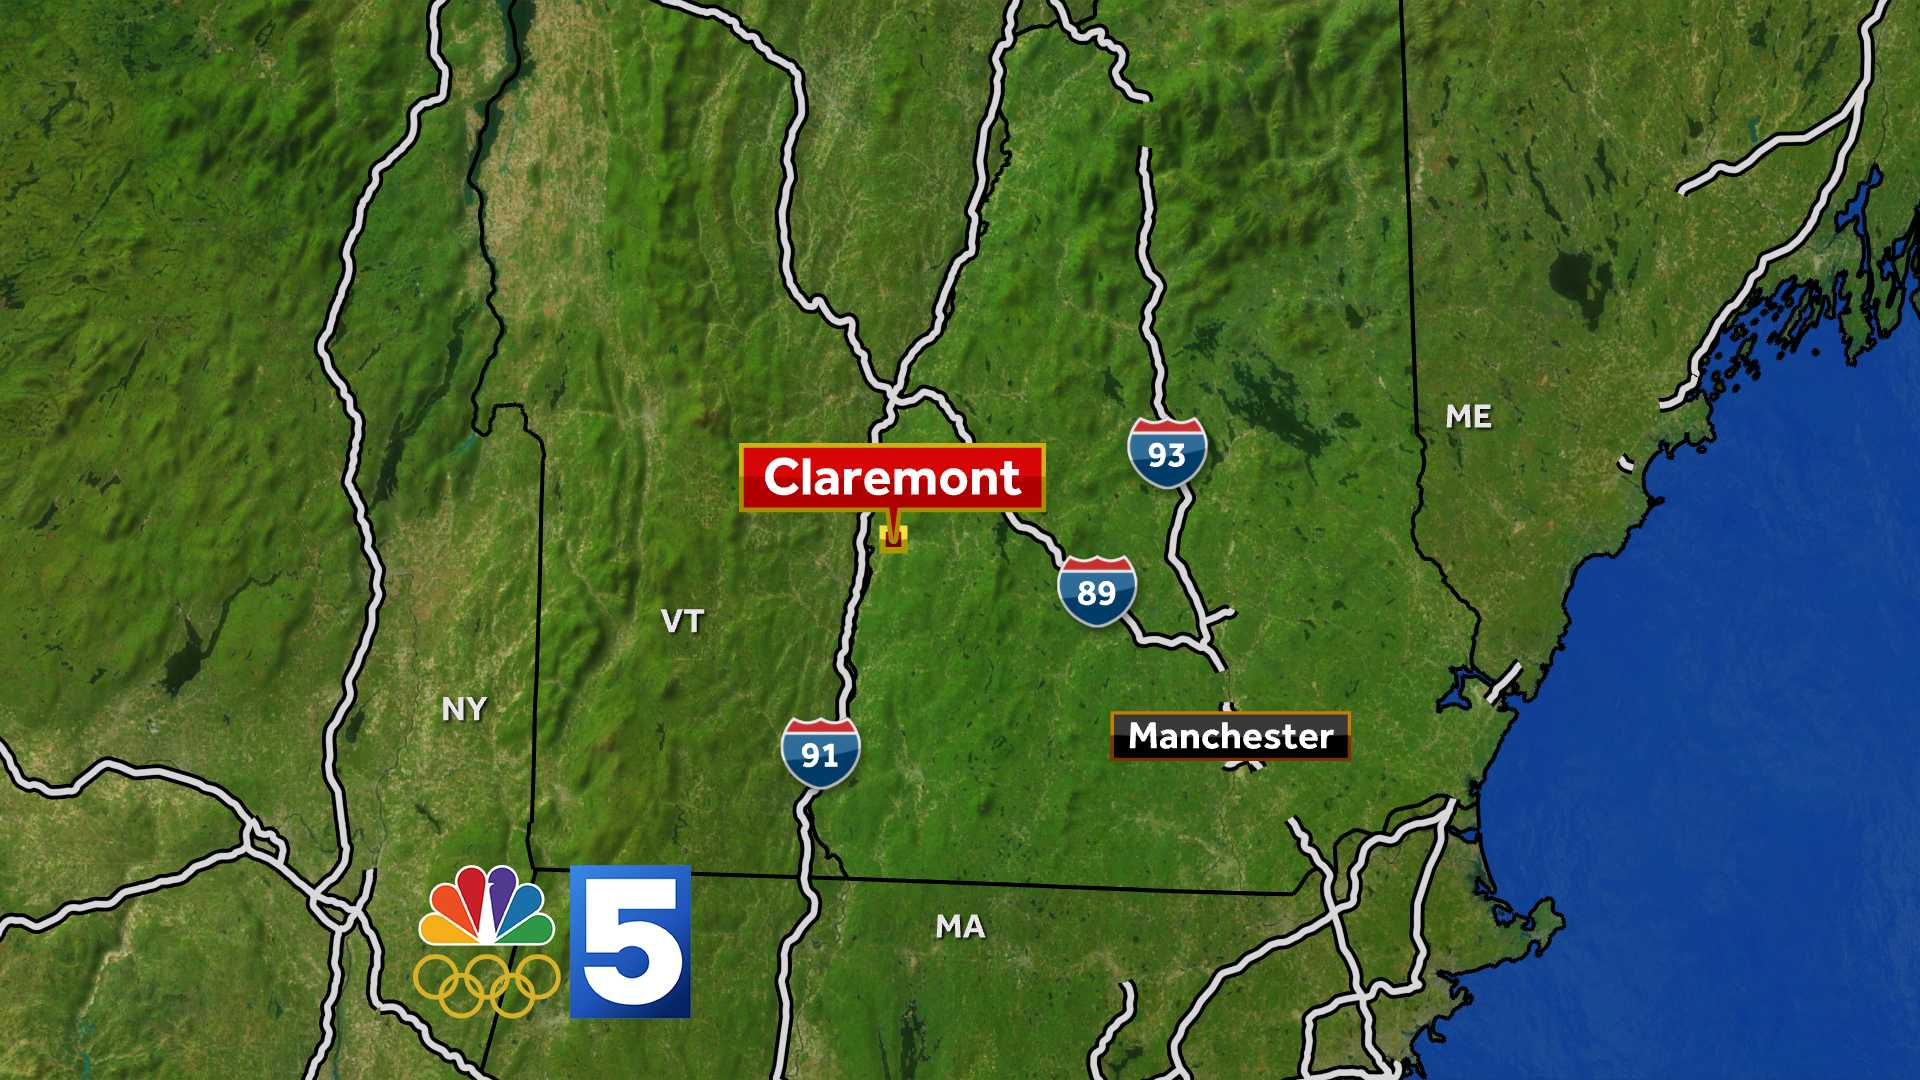 State Authorities Assisting in Investigation of Alleged Race-Based Attack in Claremont